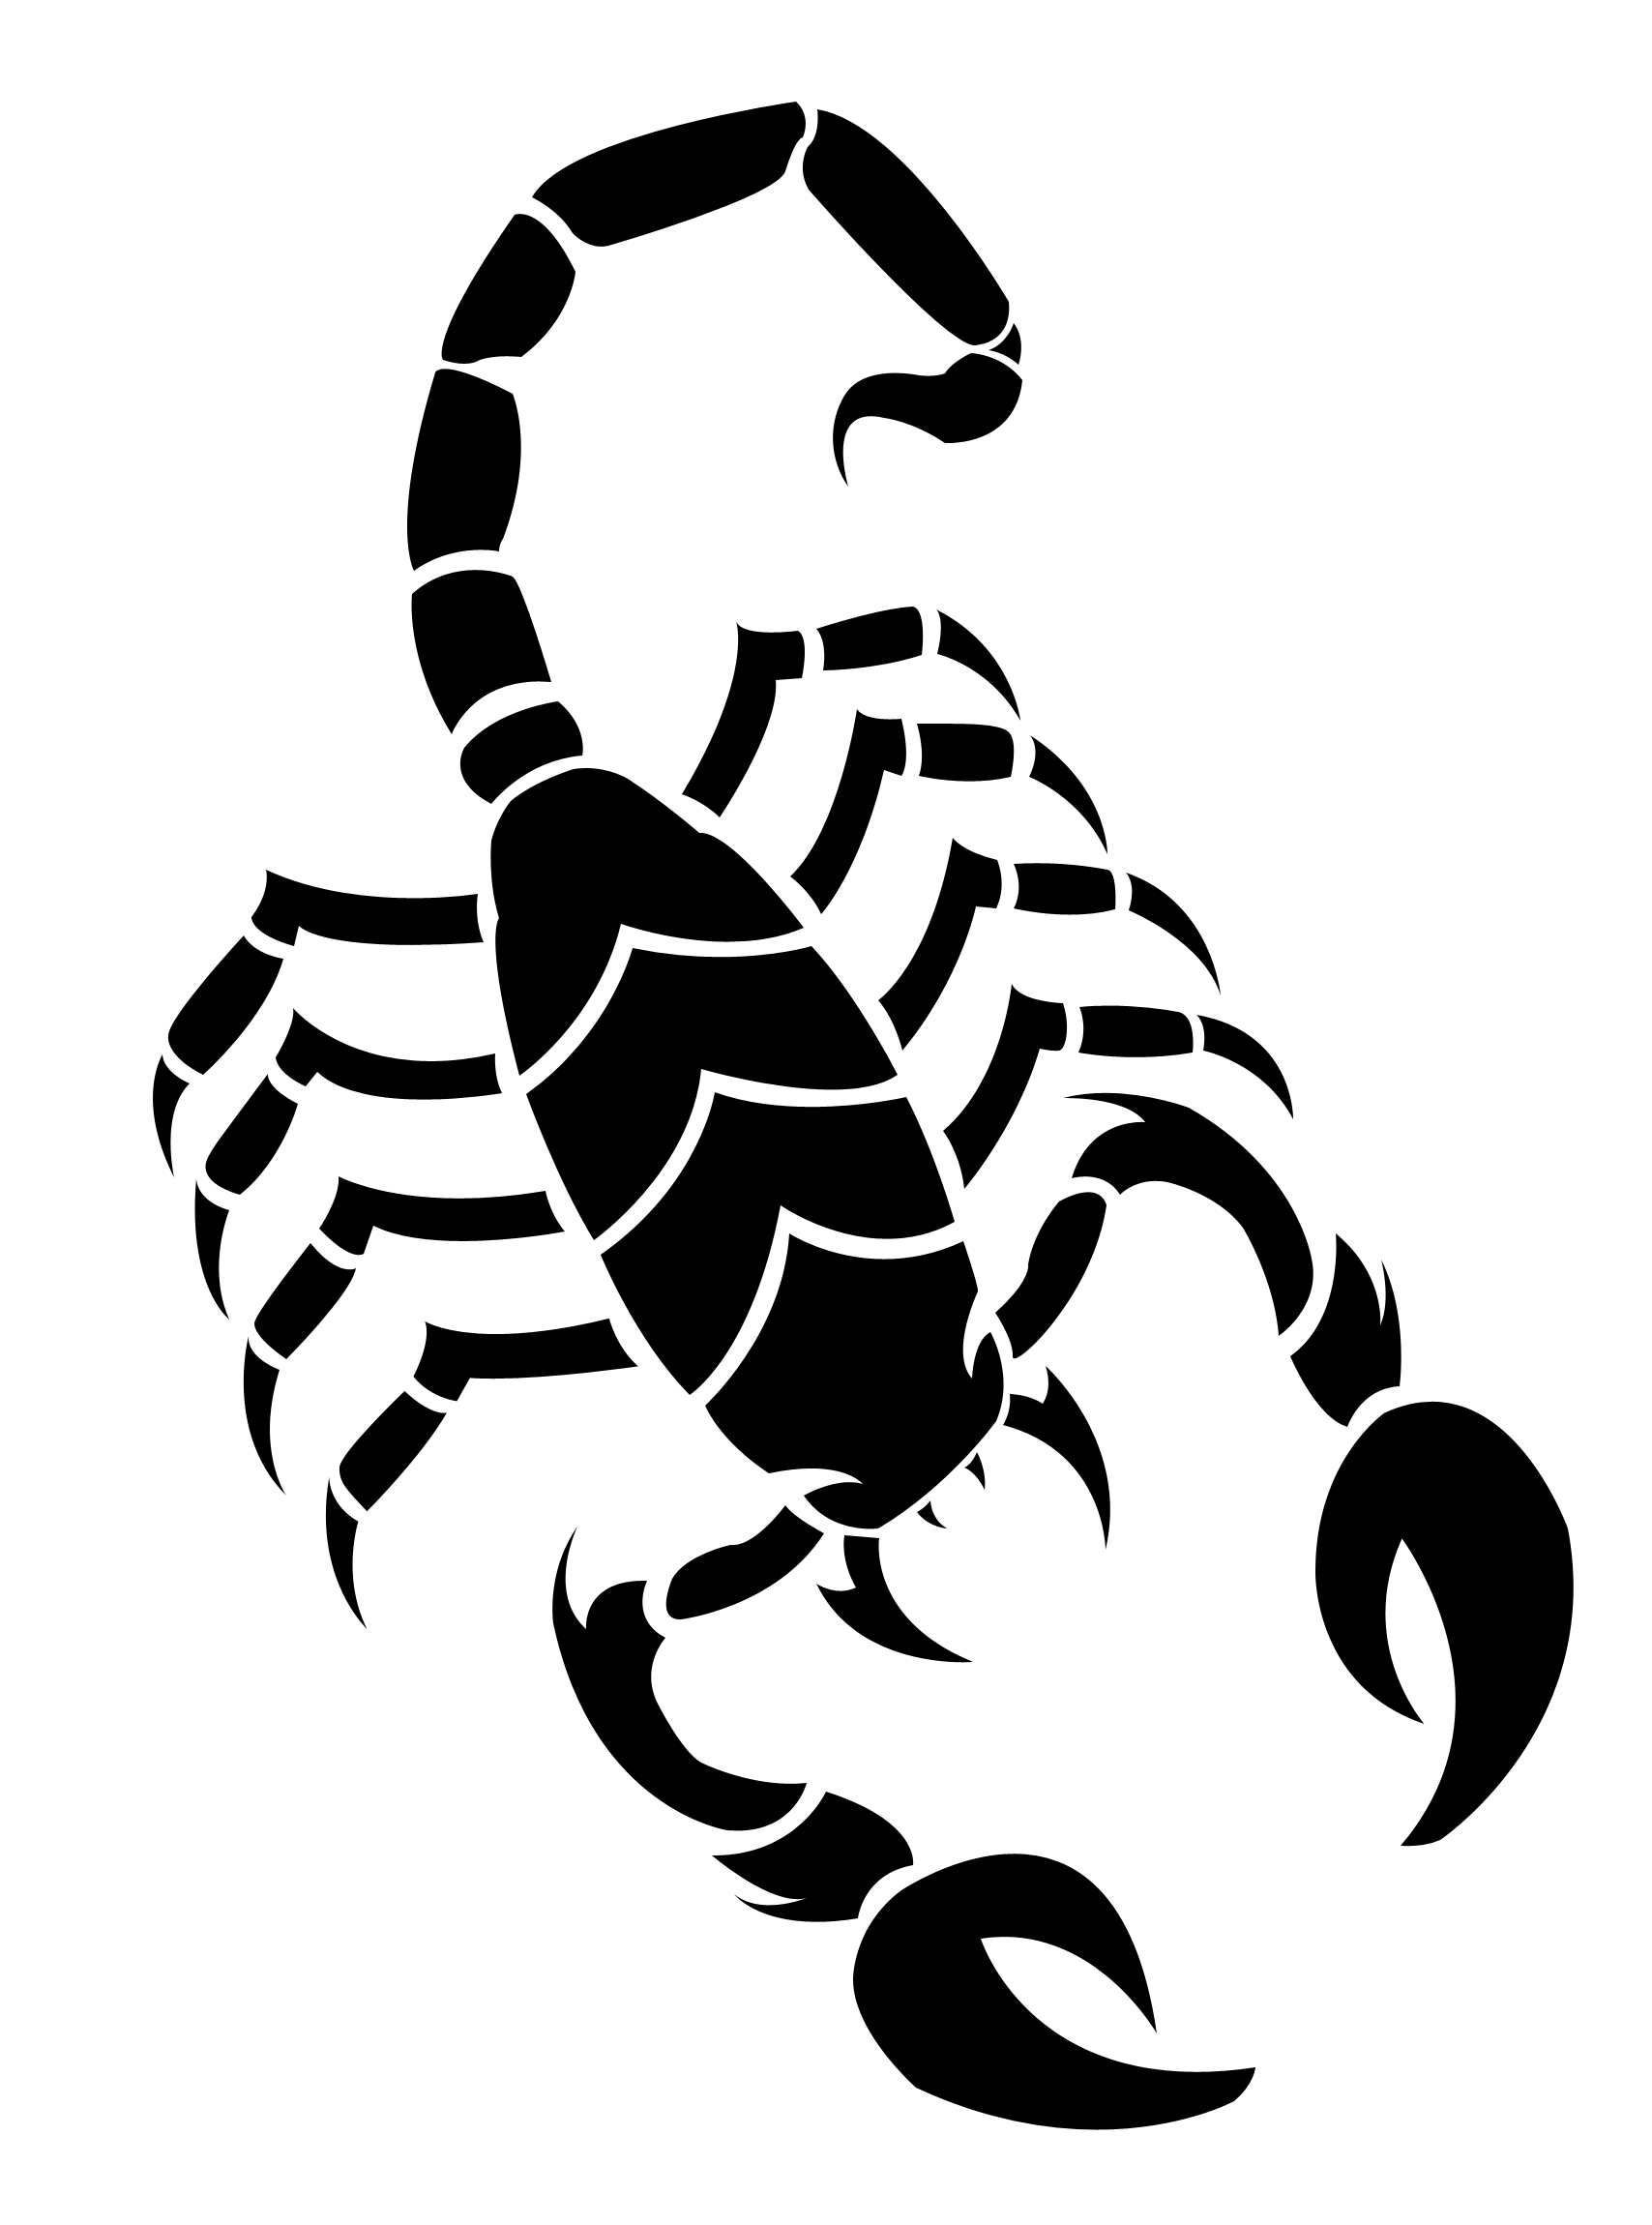 Scorpion clipart #5, Download drawings